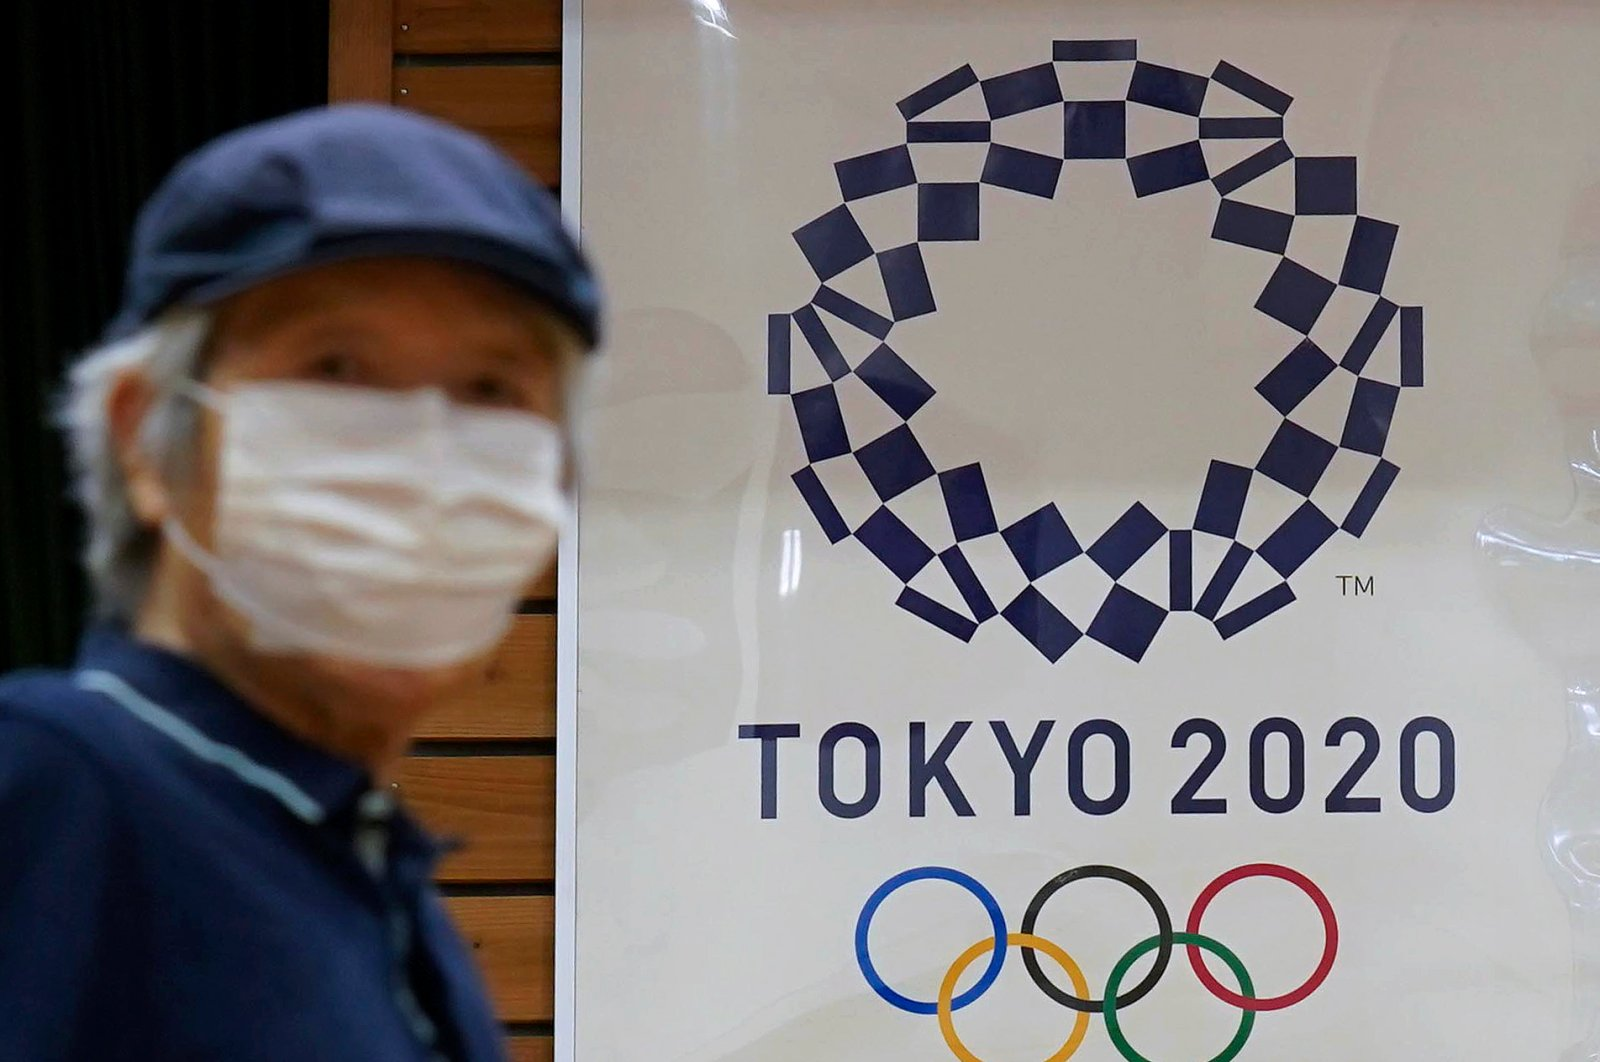 A man wears a face mask as he walks past a poster for Tokyo 2020 Olympics in Tokyo, Japan, July 5, 2020. (EPA Photo)